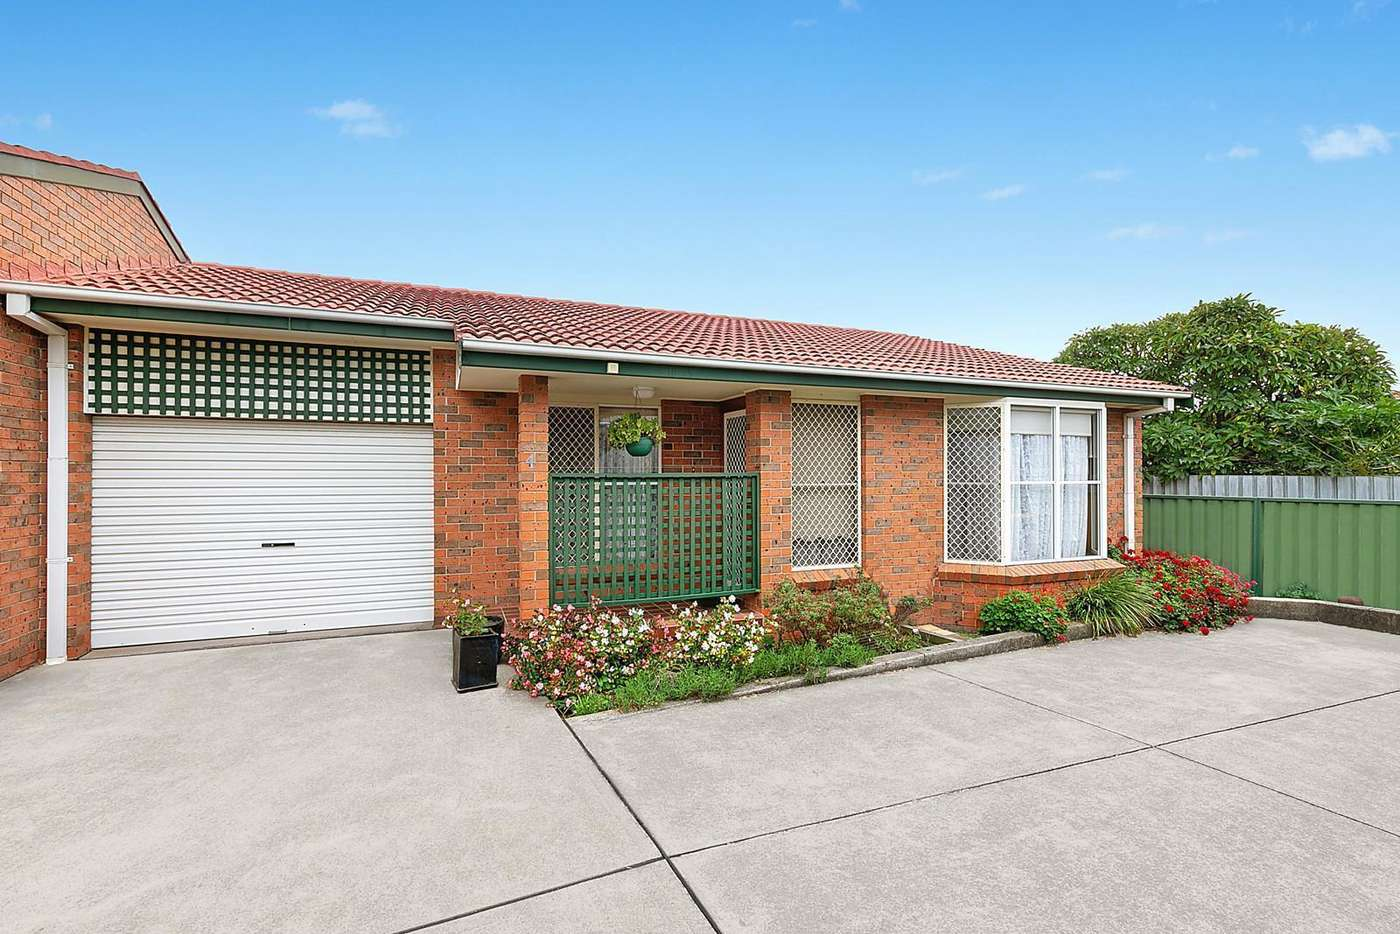 Main view of Homely house listing, 4/15 Oxford Street, New Lambton NSW 2305